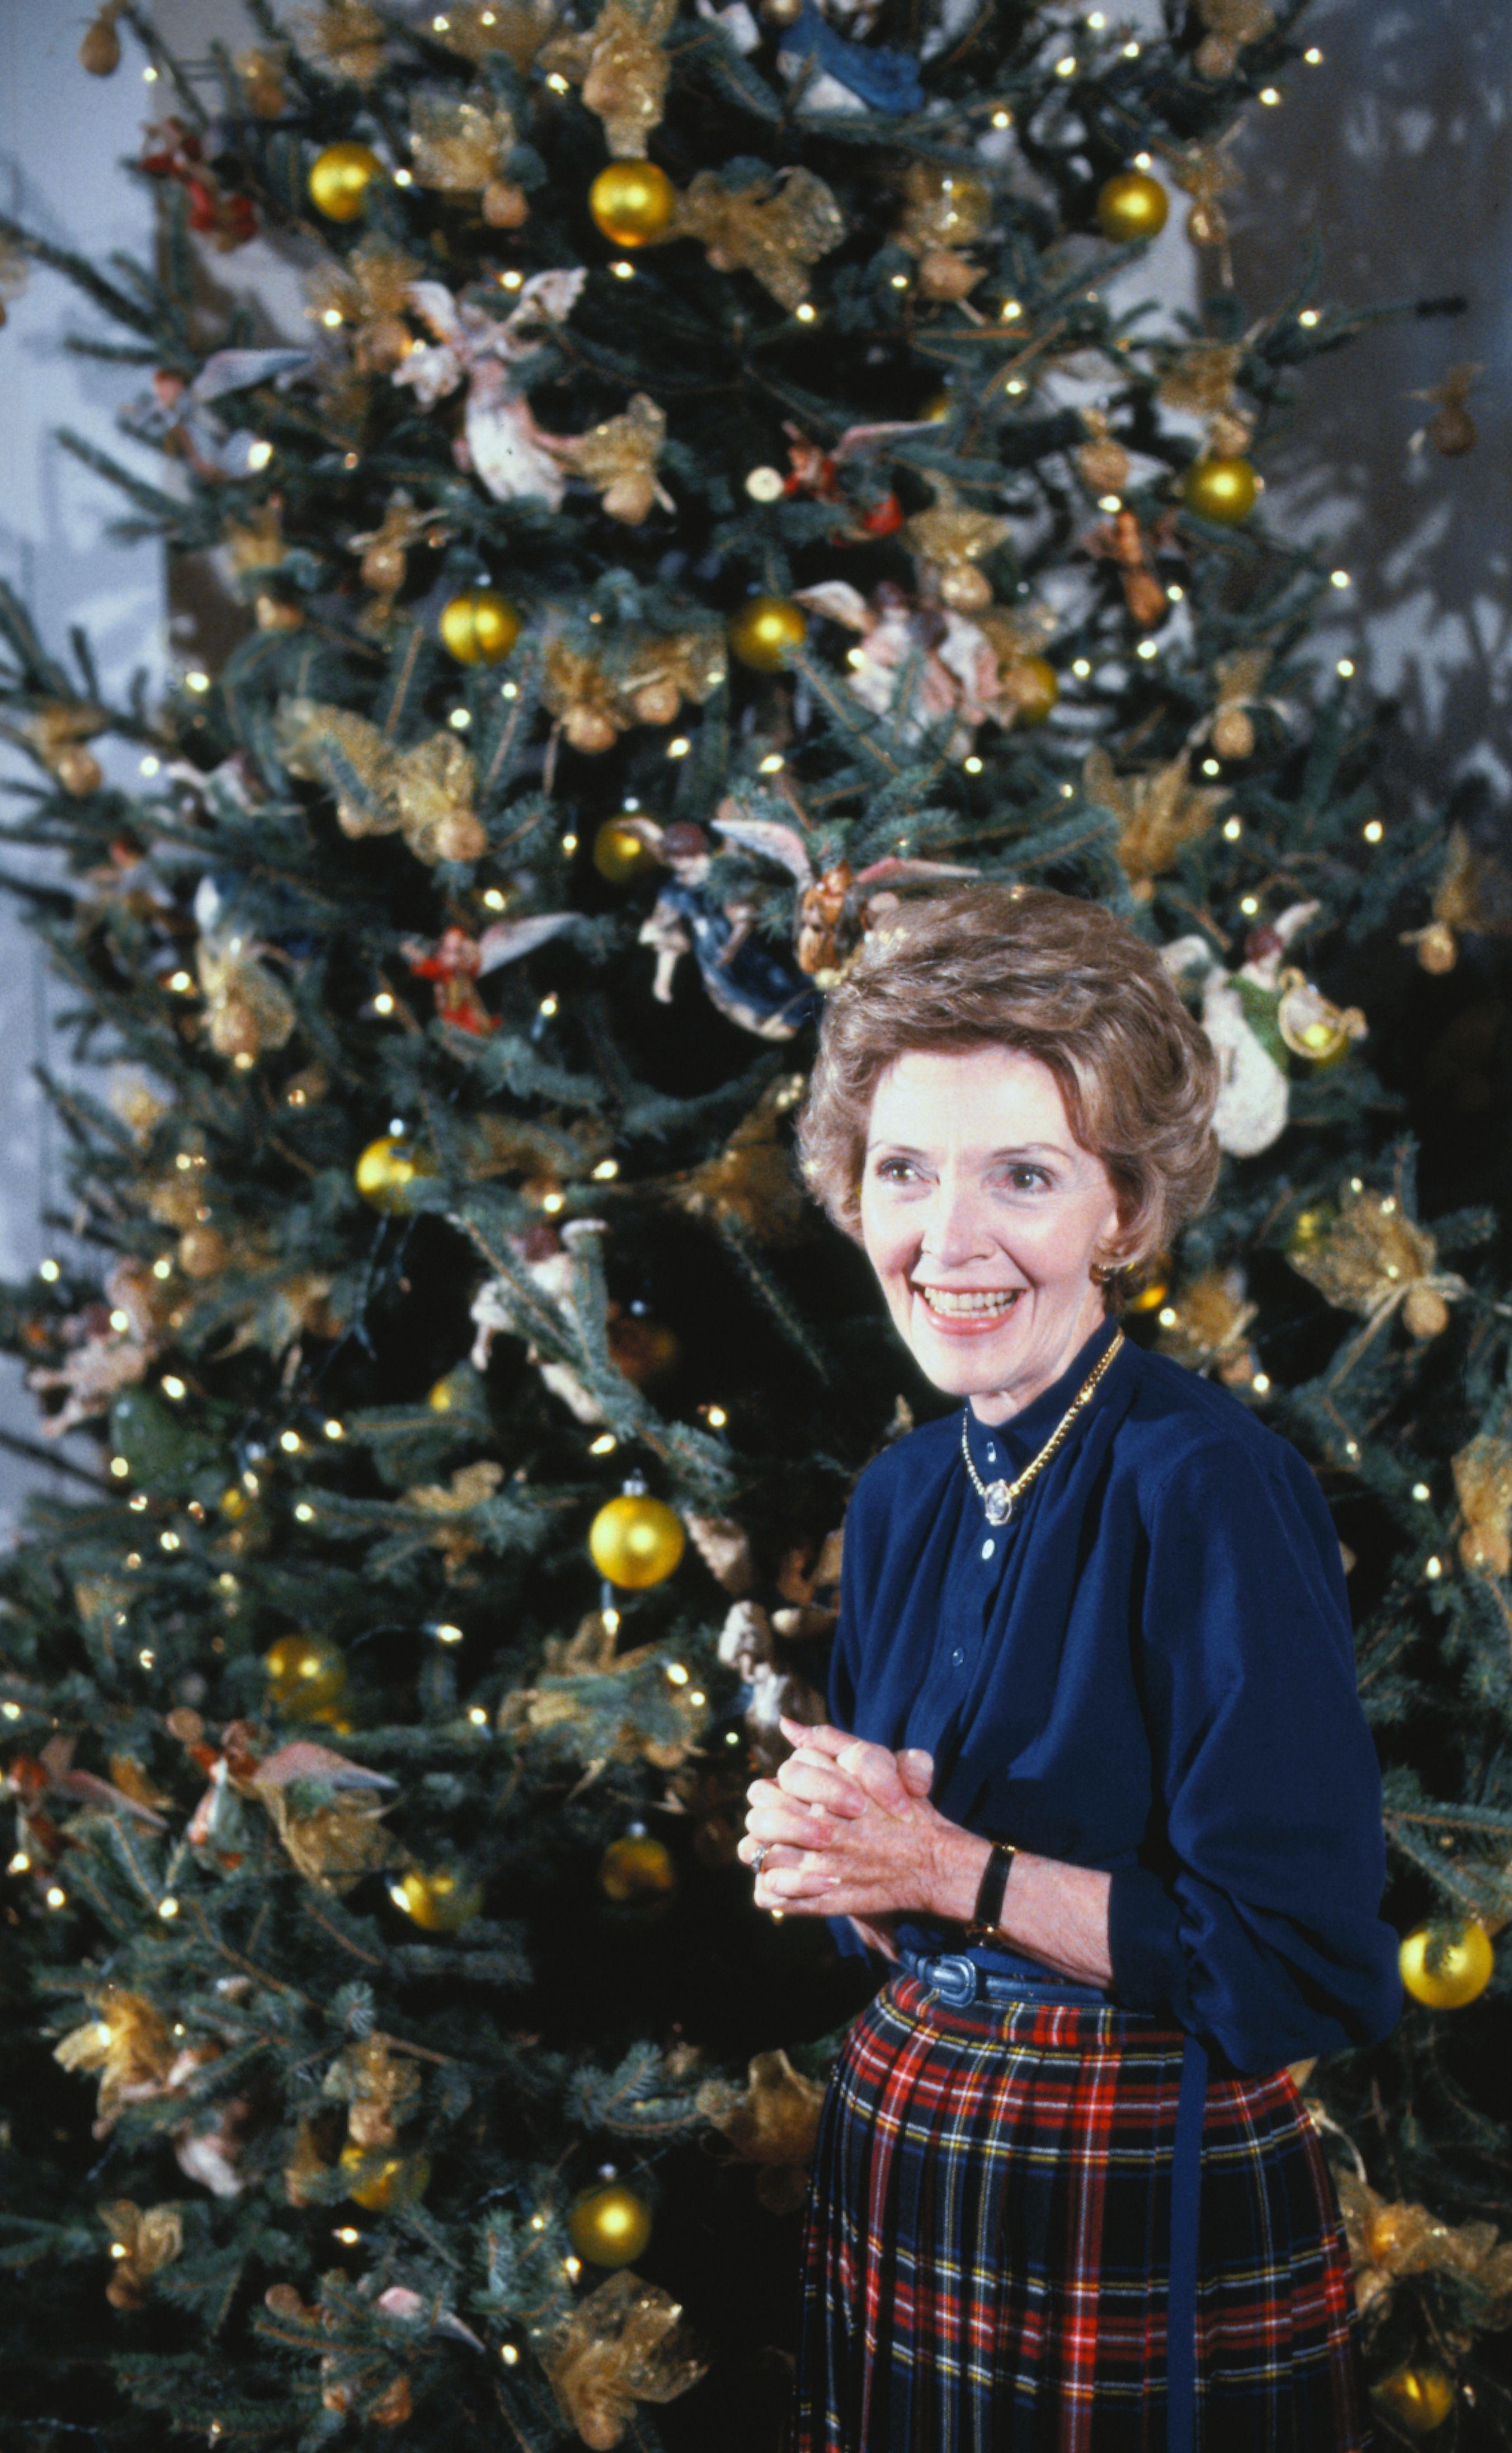 Whitehouse Christmas.A Timeline Of White House Christmas Decorations Through The